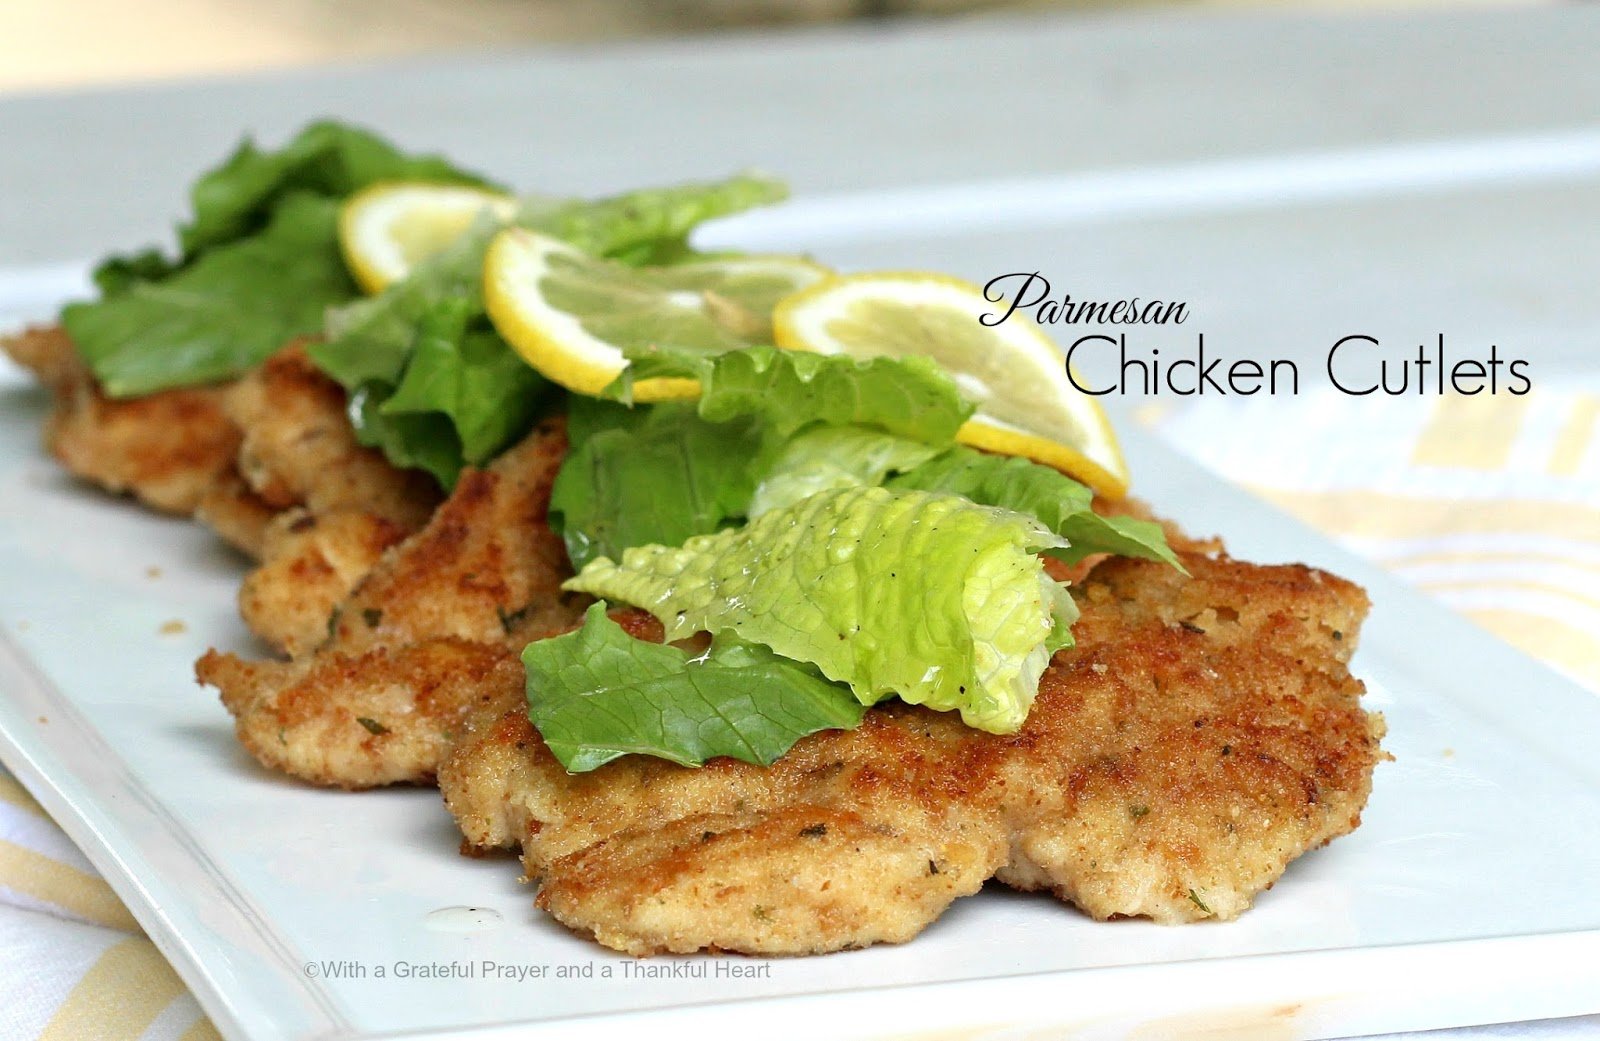 With a Grateful Prayer and a Thankful Heart: Parmesan Chicken Cutlets